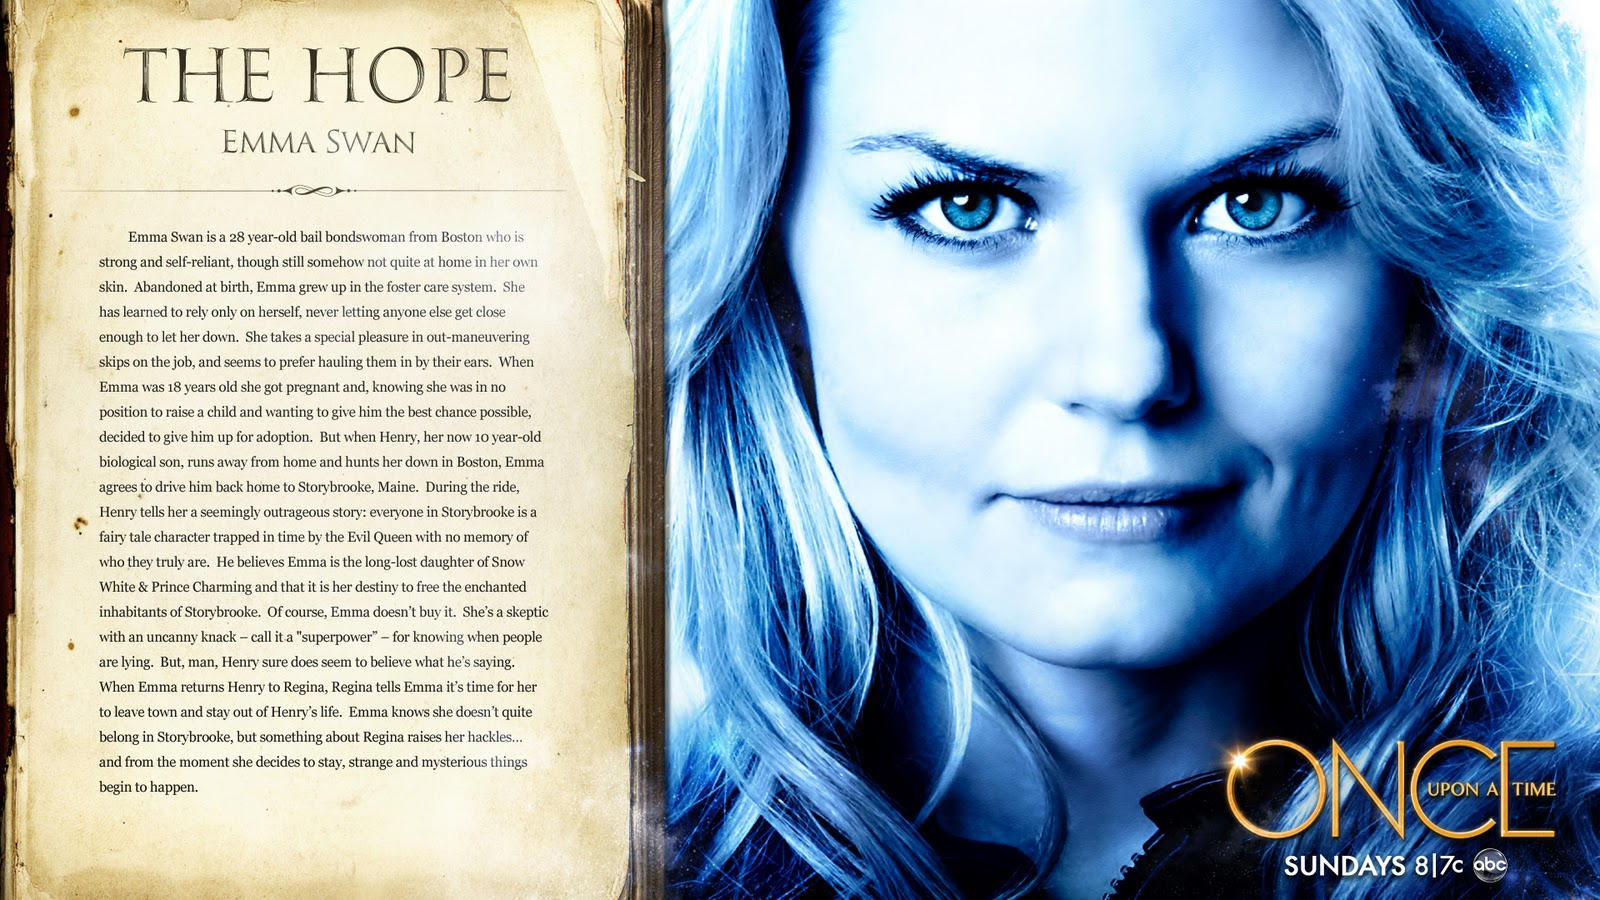 Free Download Once Upon A Time Images Emma Swan Wallpaper Photos